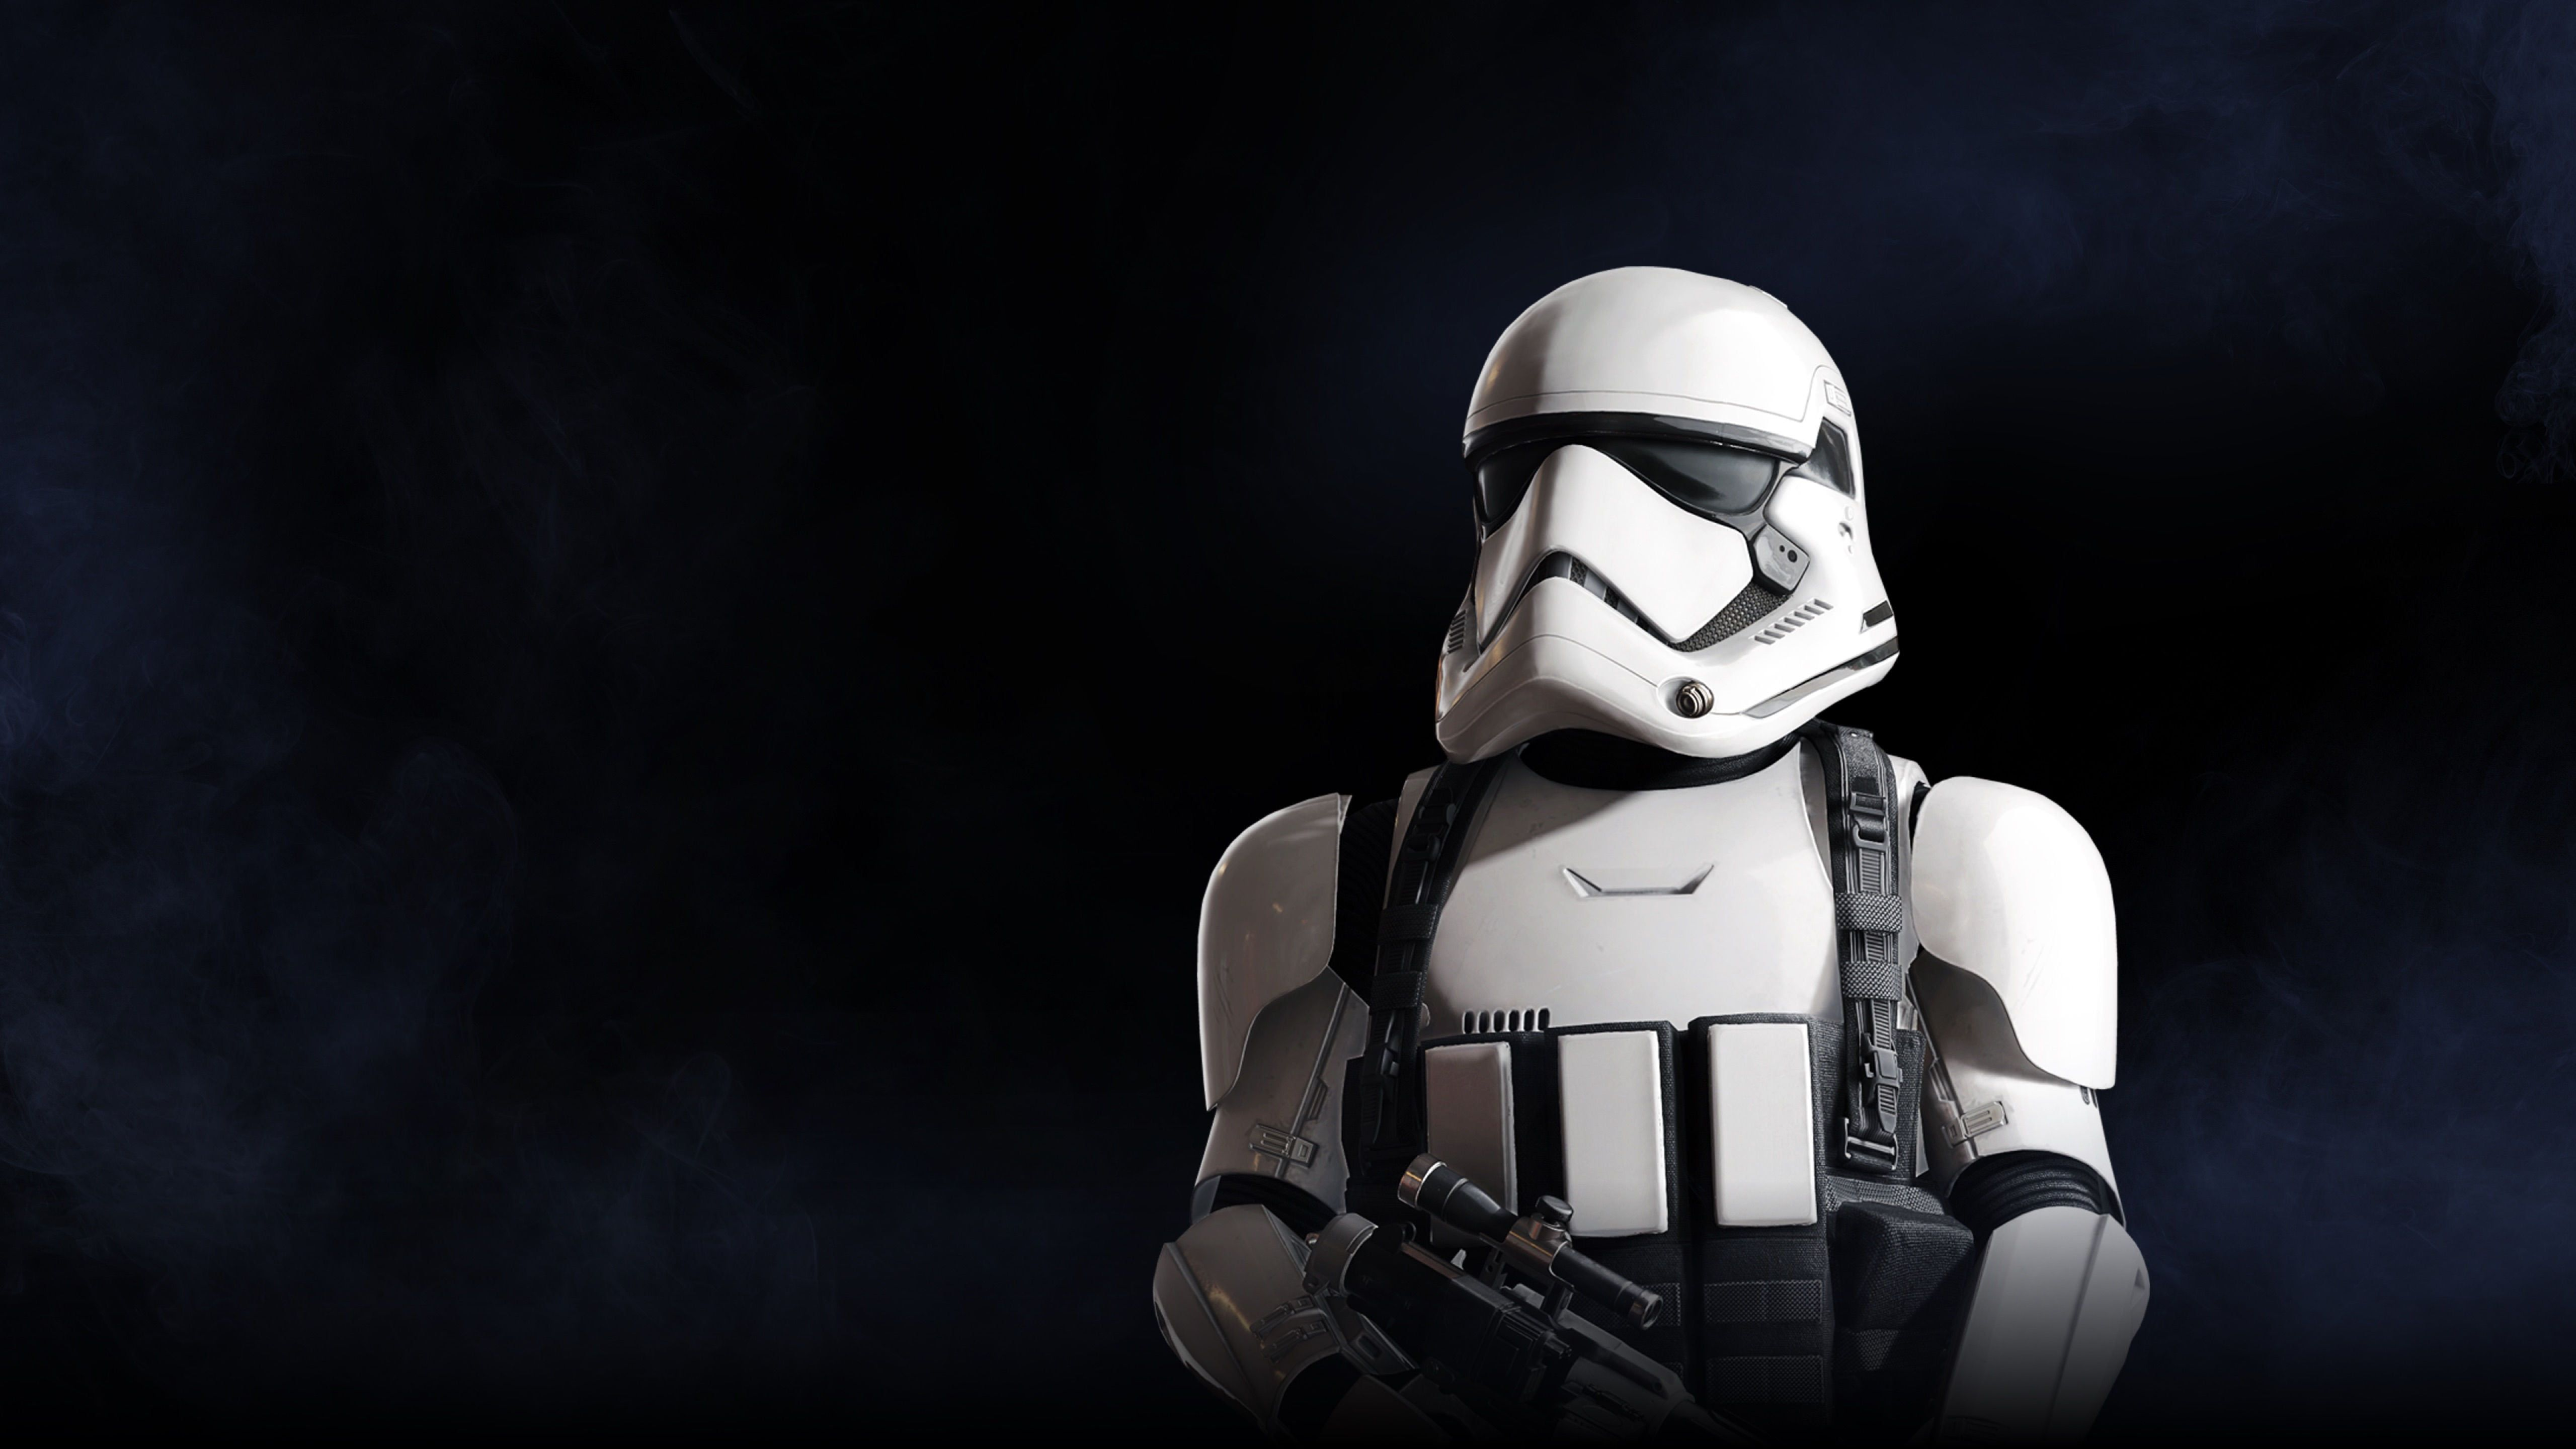 Star Wars Clone Troopers Wallpapers On Wallpaperdog